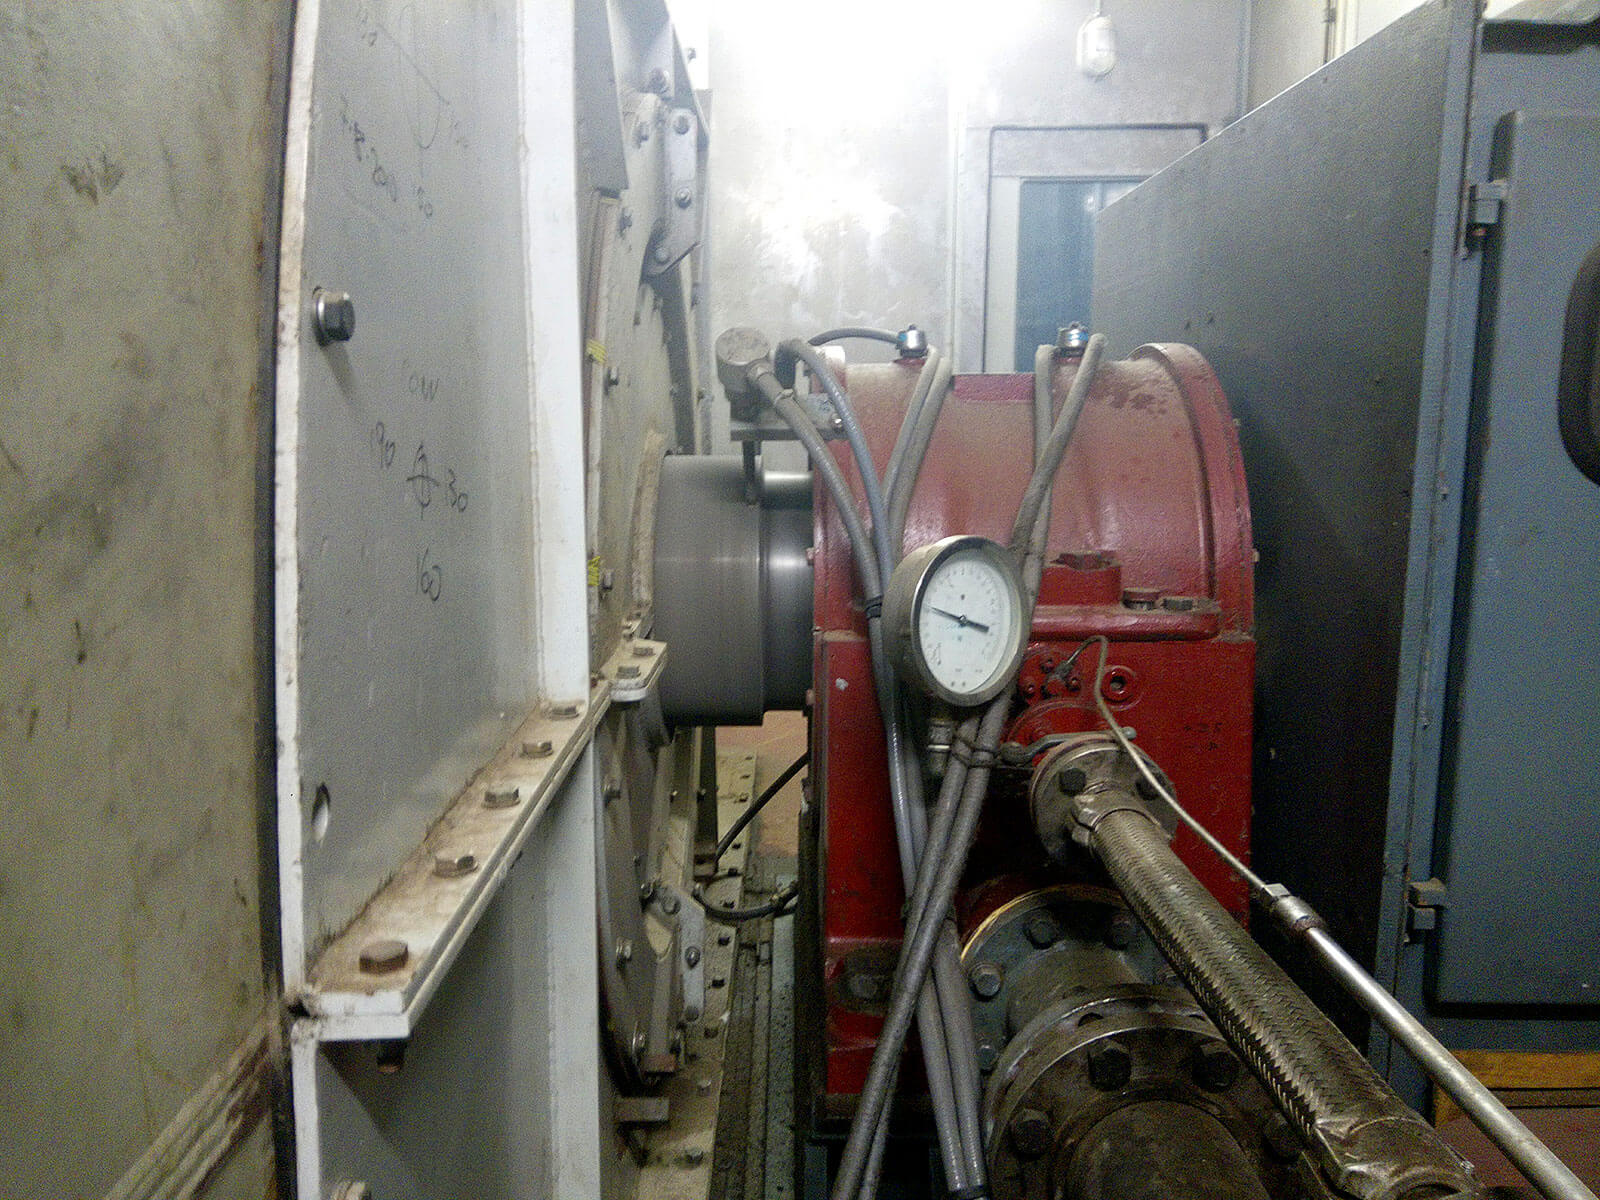 Shaft between main turbine and generator